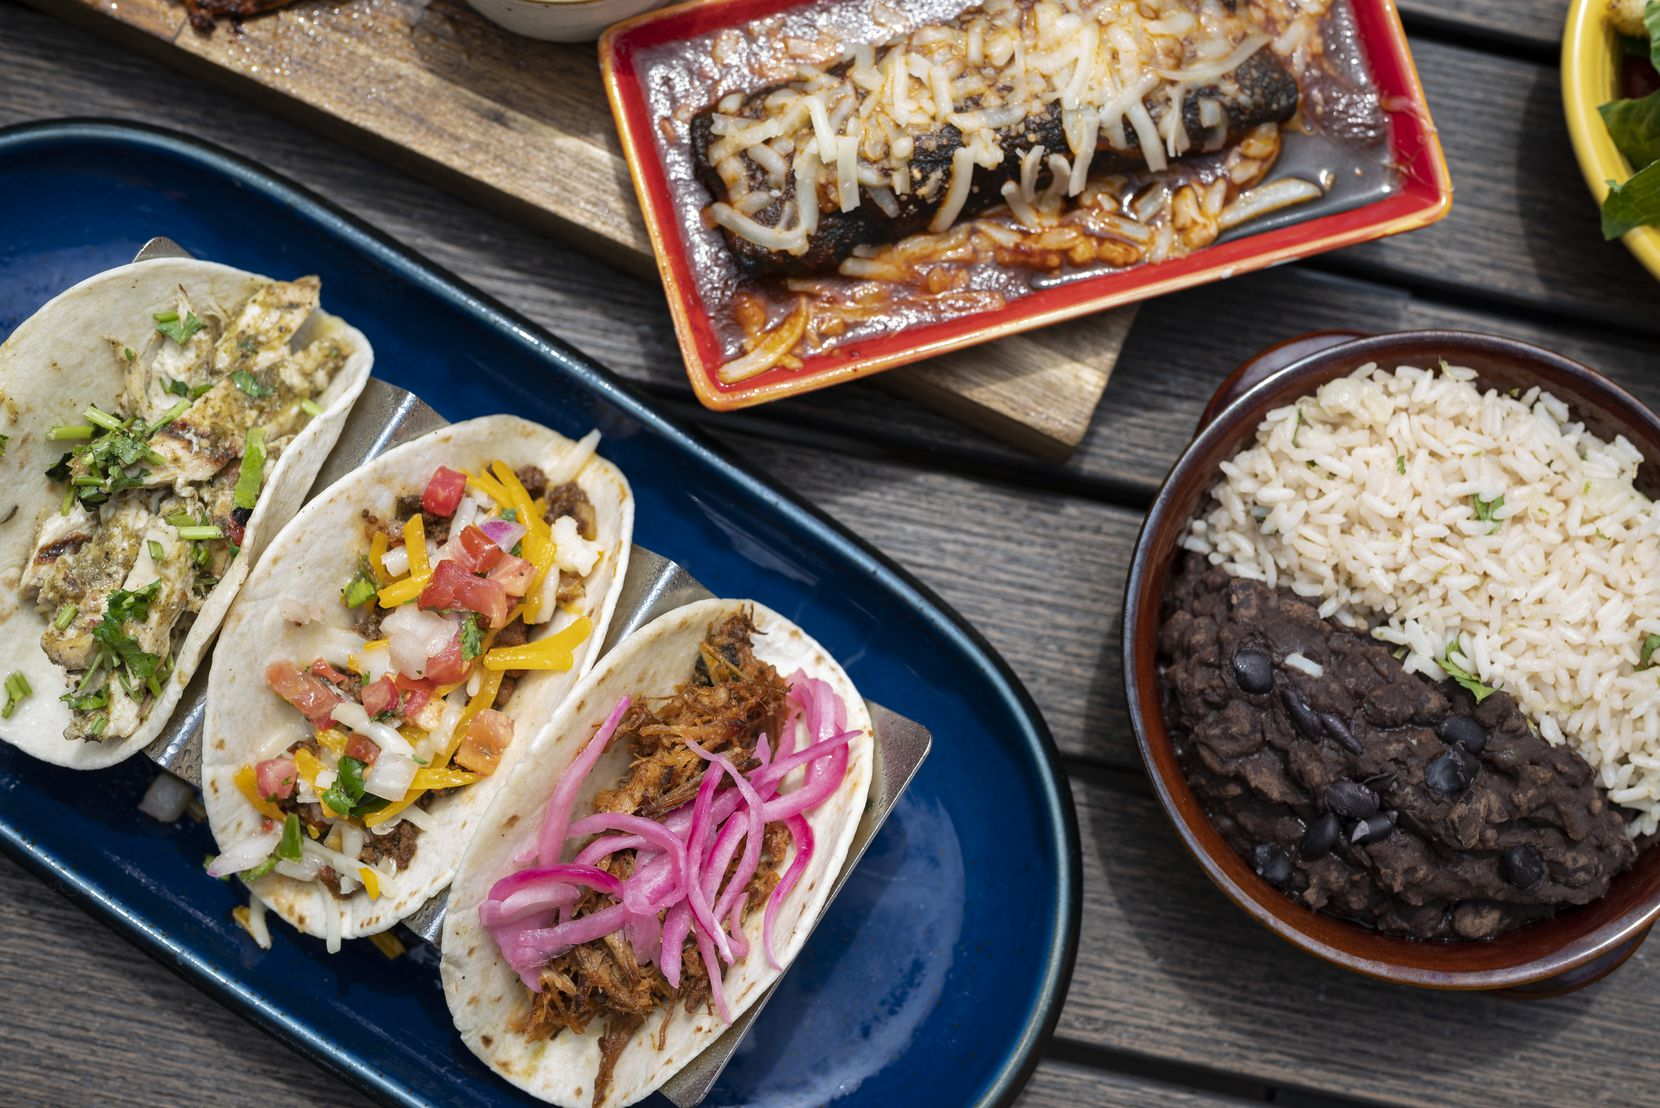 Tacos with chicken verde, ground beef chorizo and pulled pork, with a three chili sauce cheese enchilada, along with a bowl of smokey black beans and lime coconut rice, from the Mother's Day brunch menu from Blue Mesa Grill in Dallas.